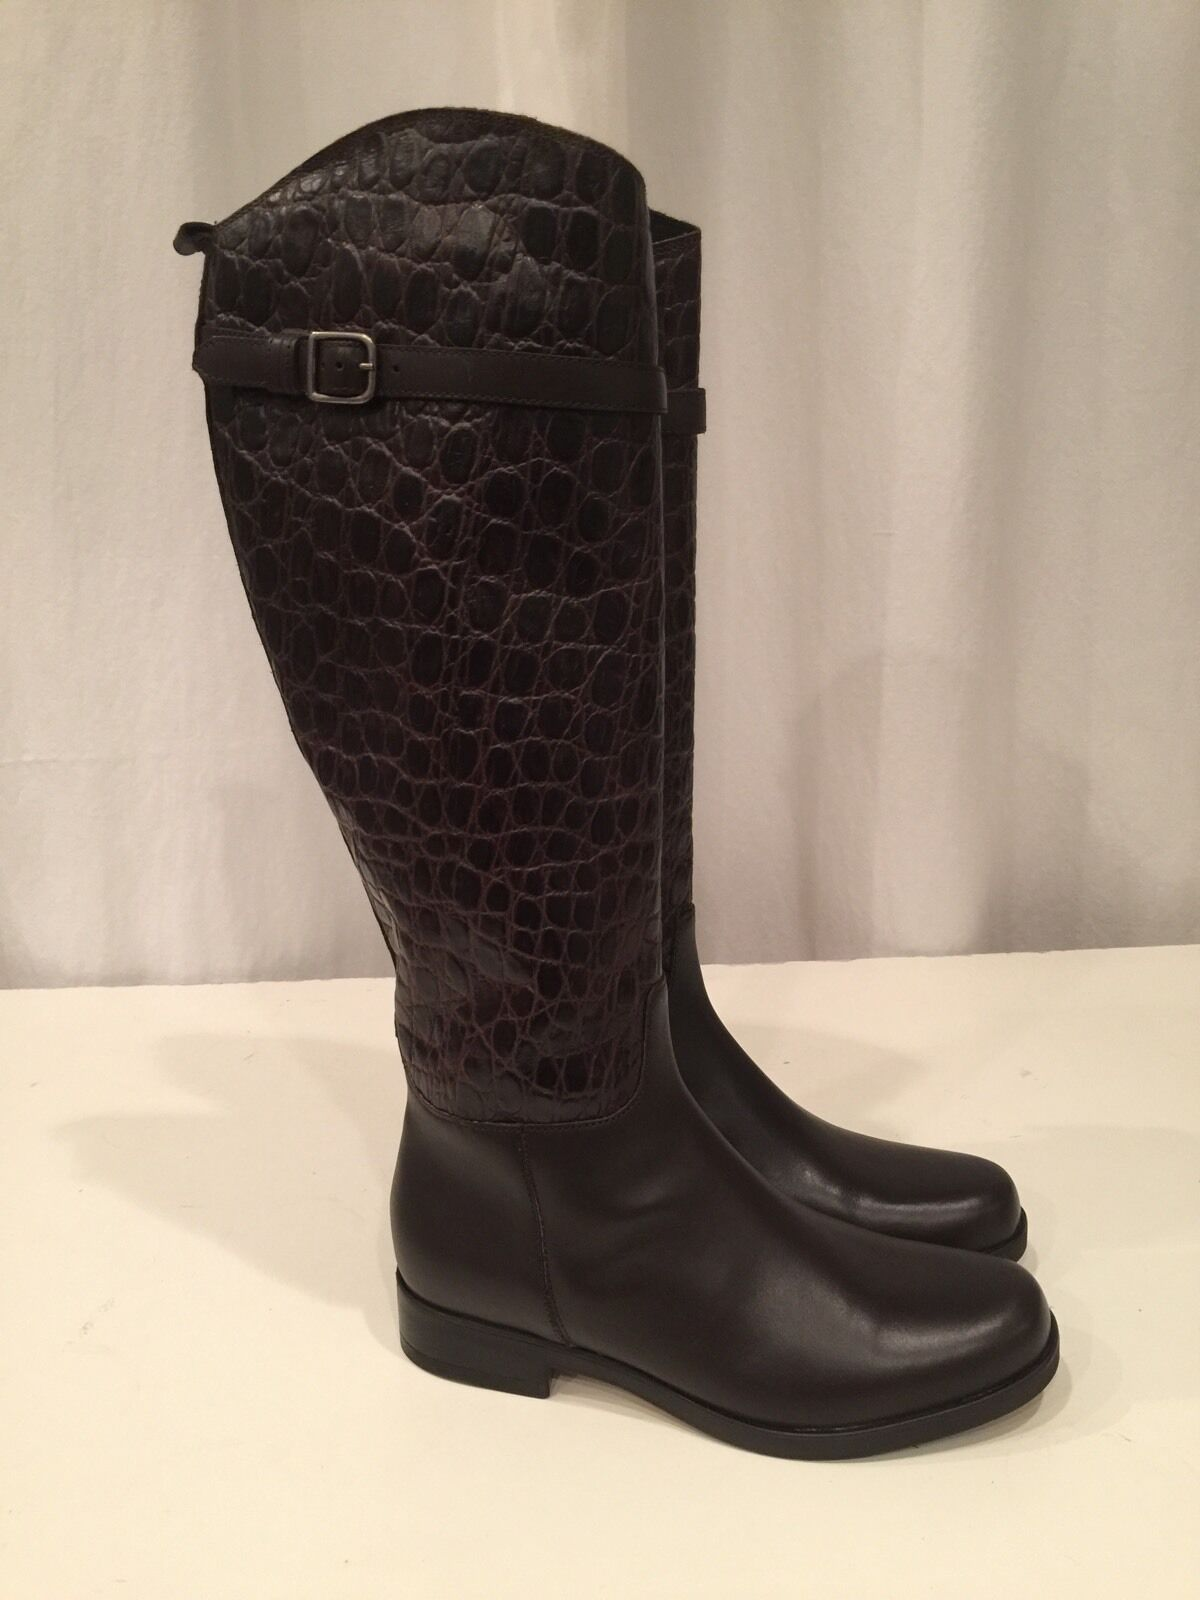 New CLARKS HOPEDALE WISH Brown Leather Tall Riding Boots Size 7.5 M